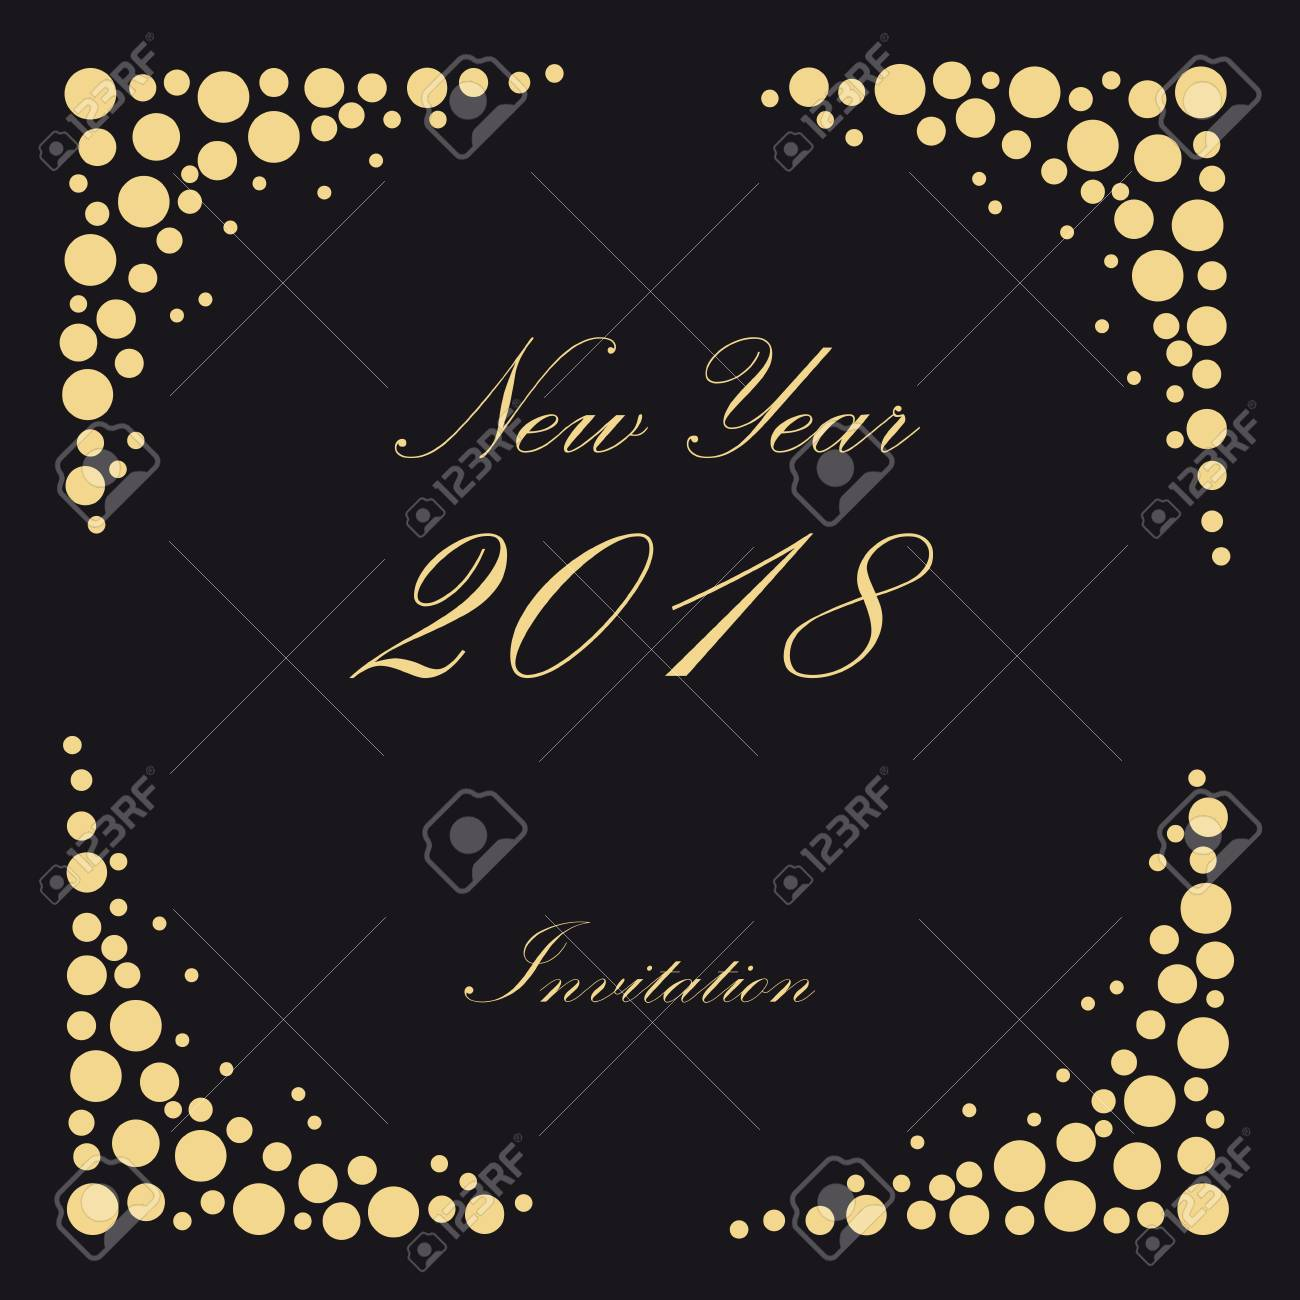 2018 new year party invitation vintage poster vector black background with bubbles champagne